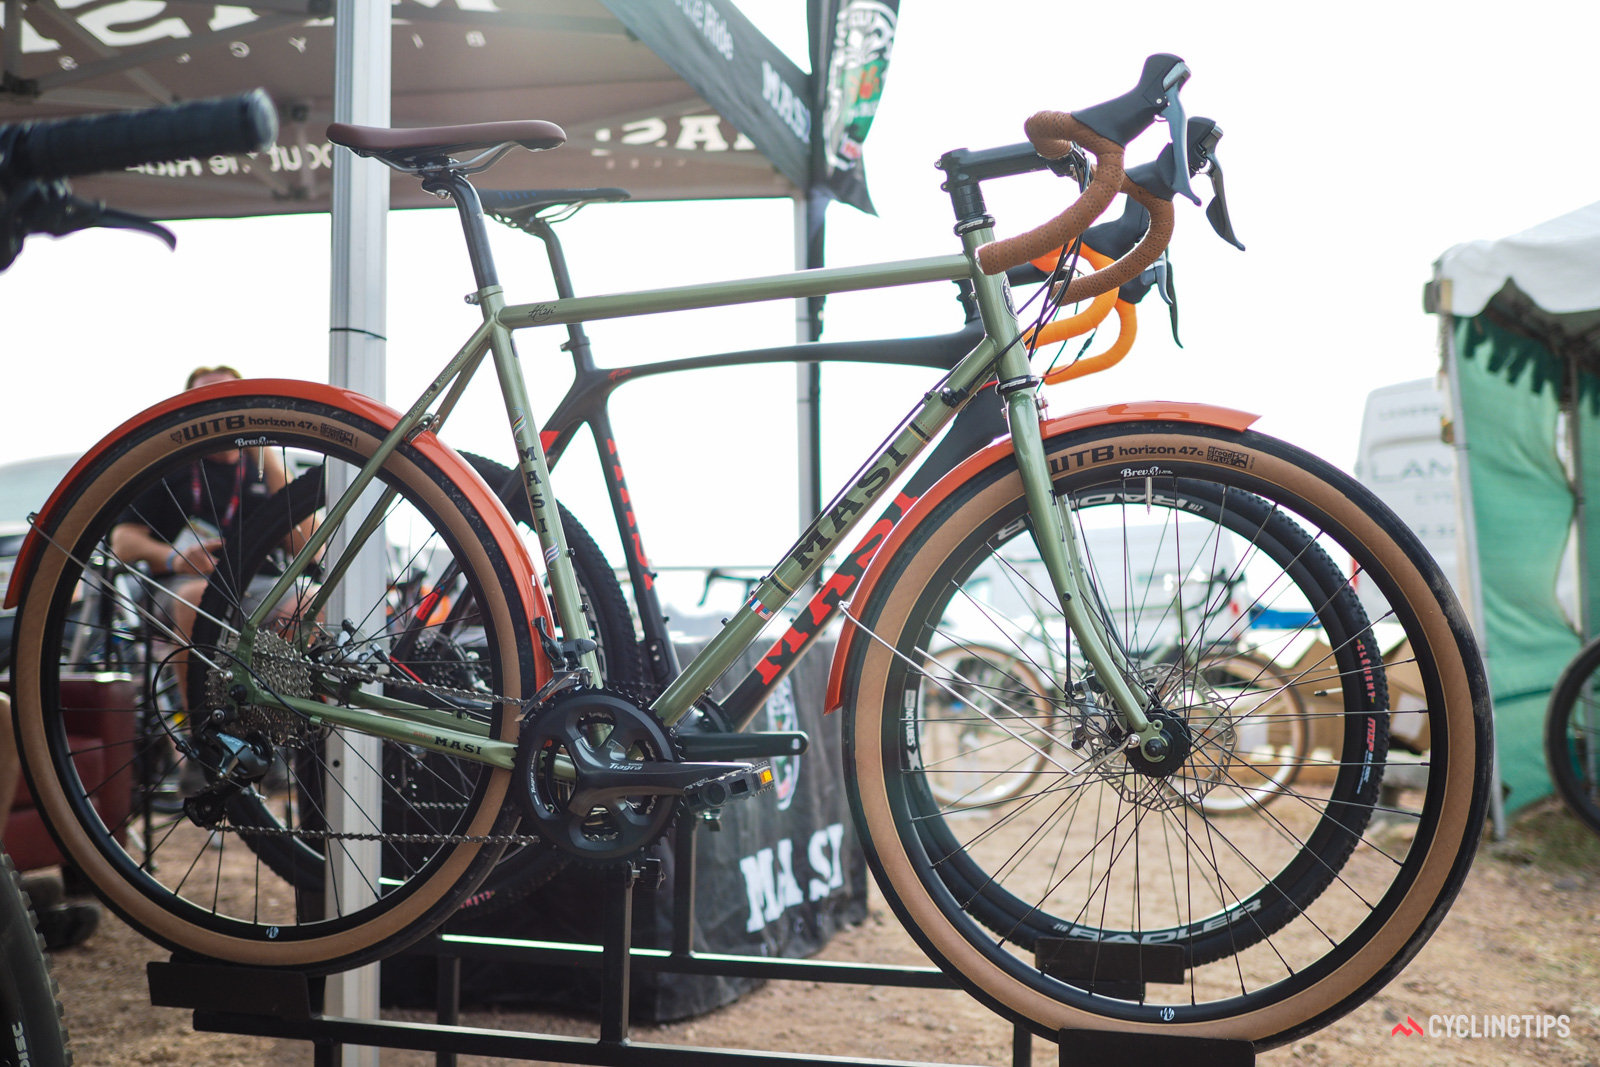 The Masi Speciale Randonneur returns for 2017, but this time with 650b wheels and WTB Horizon 47 tires as stock equipment instead of last year's 700c setup.